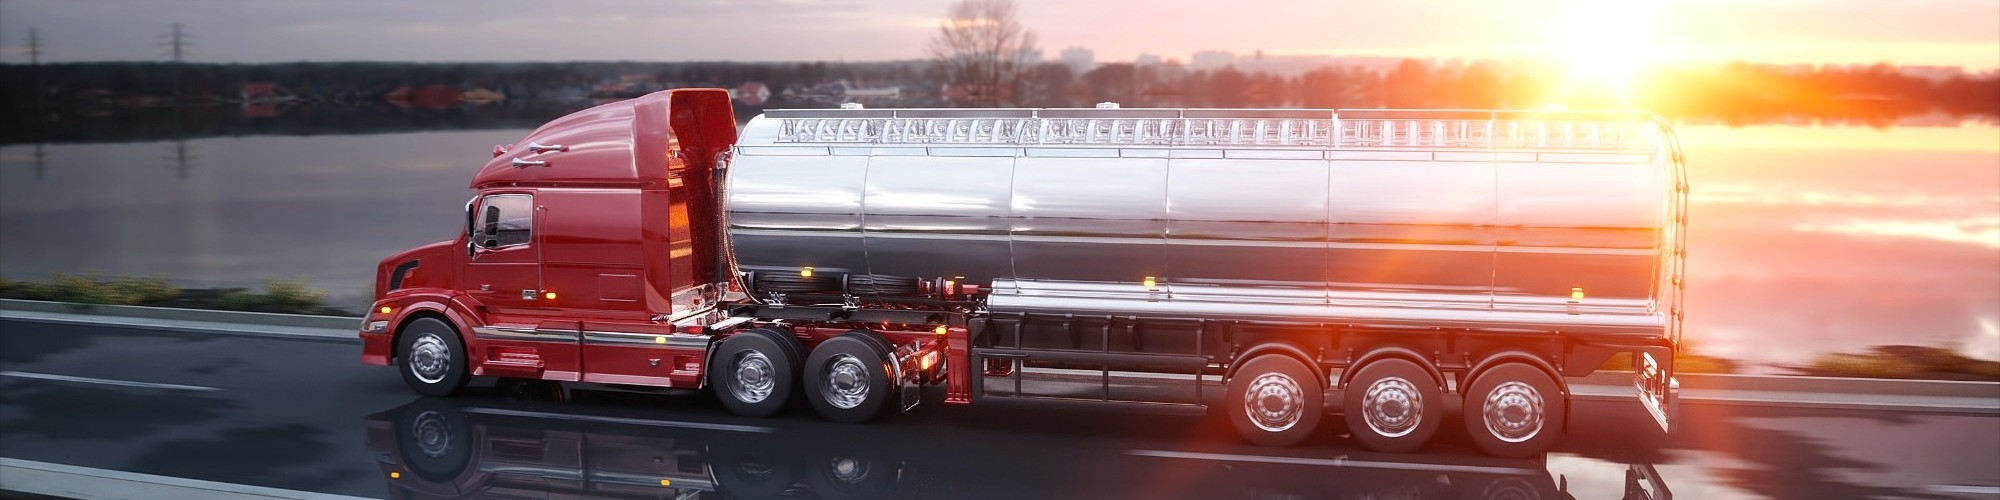 Diesel Fuel Service in Sussex County, NJ